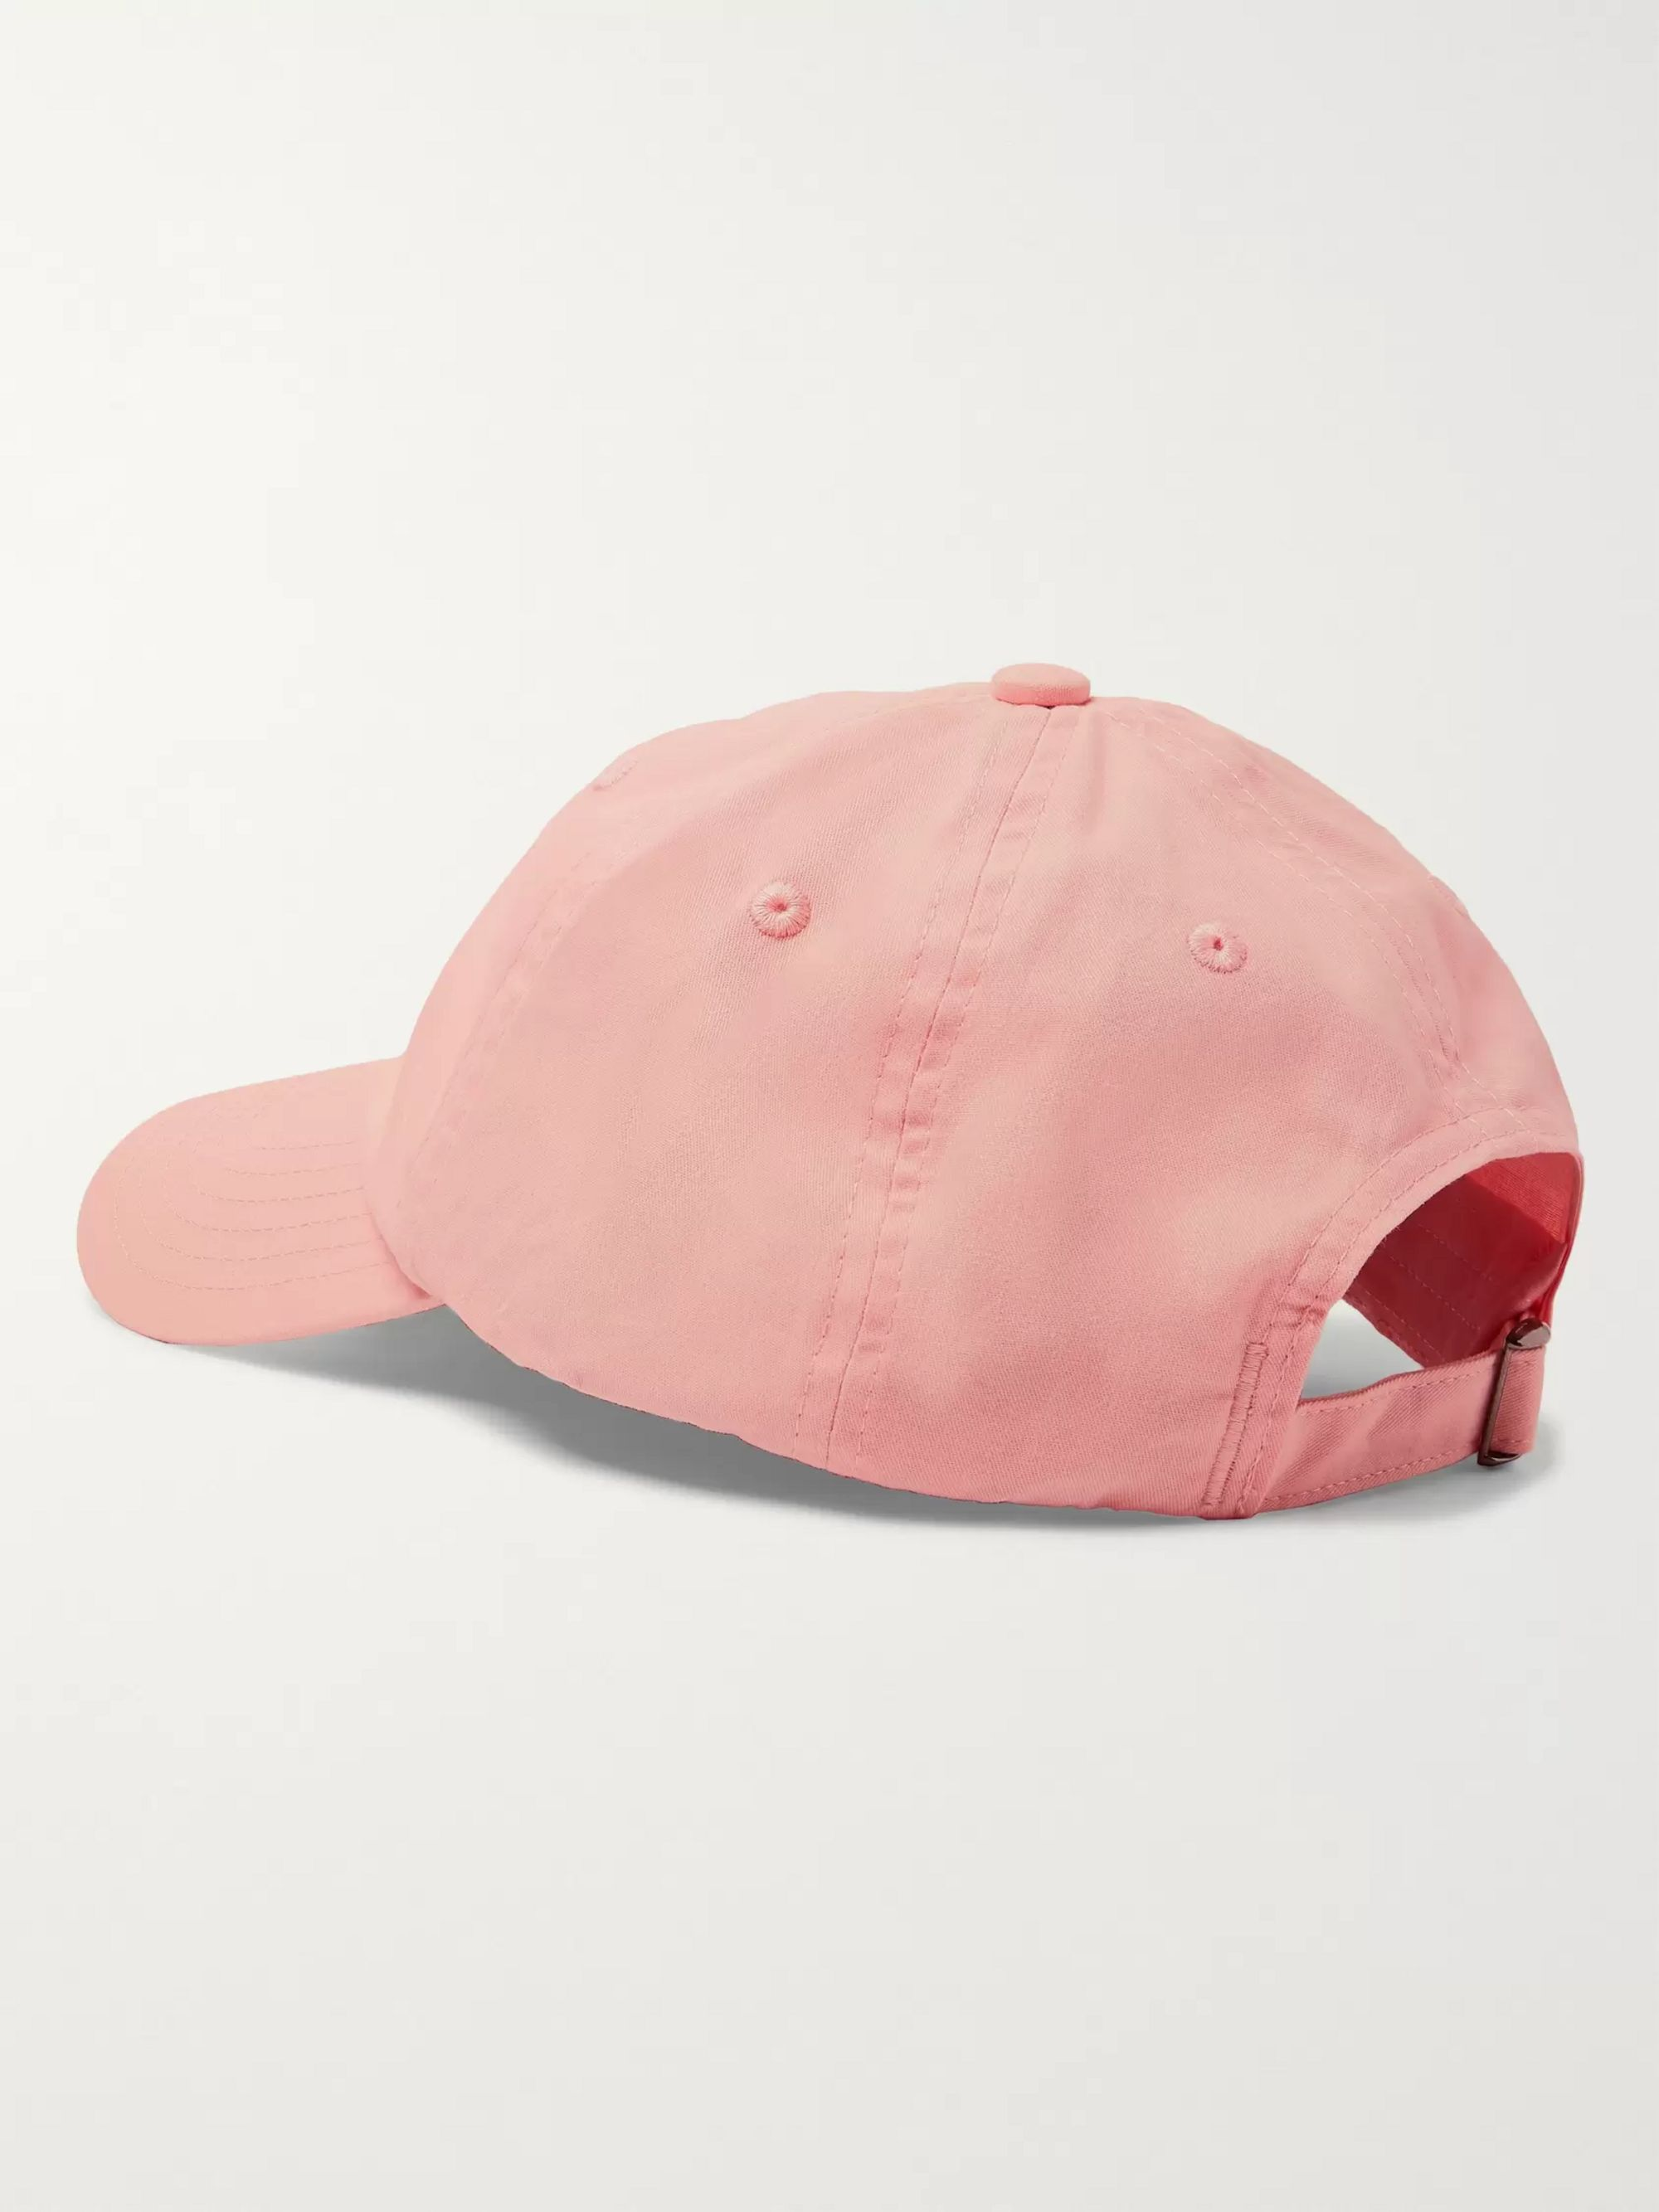 Acne Studios Logo-Appliquéd Cotton-Twill Baseball Cap